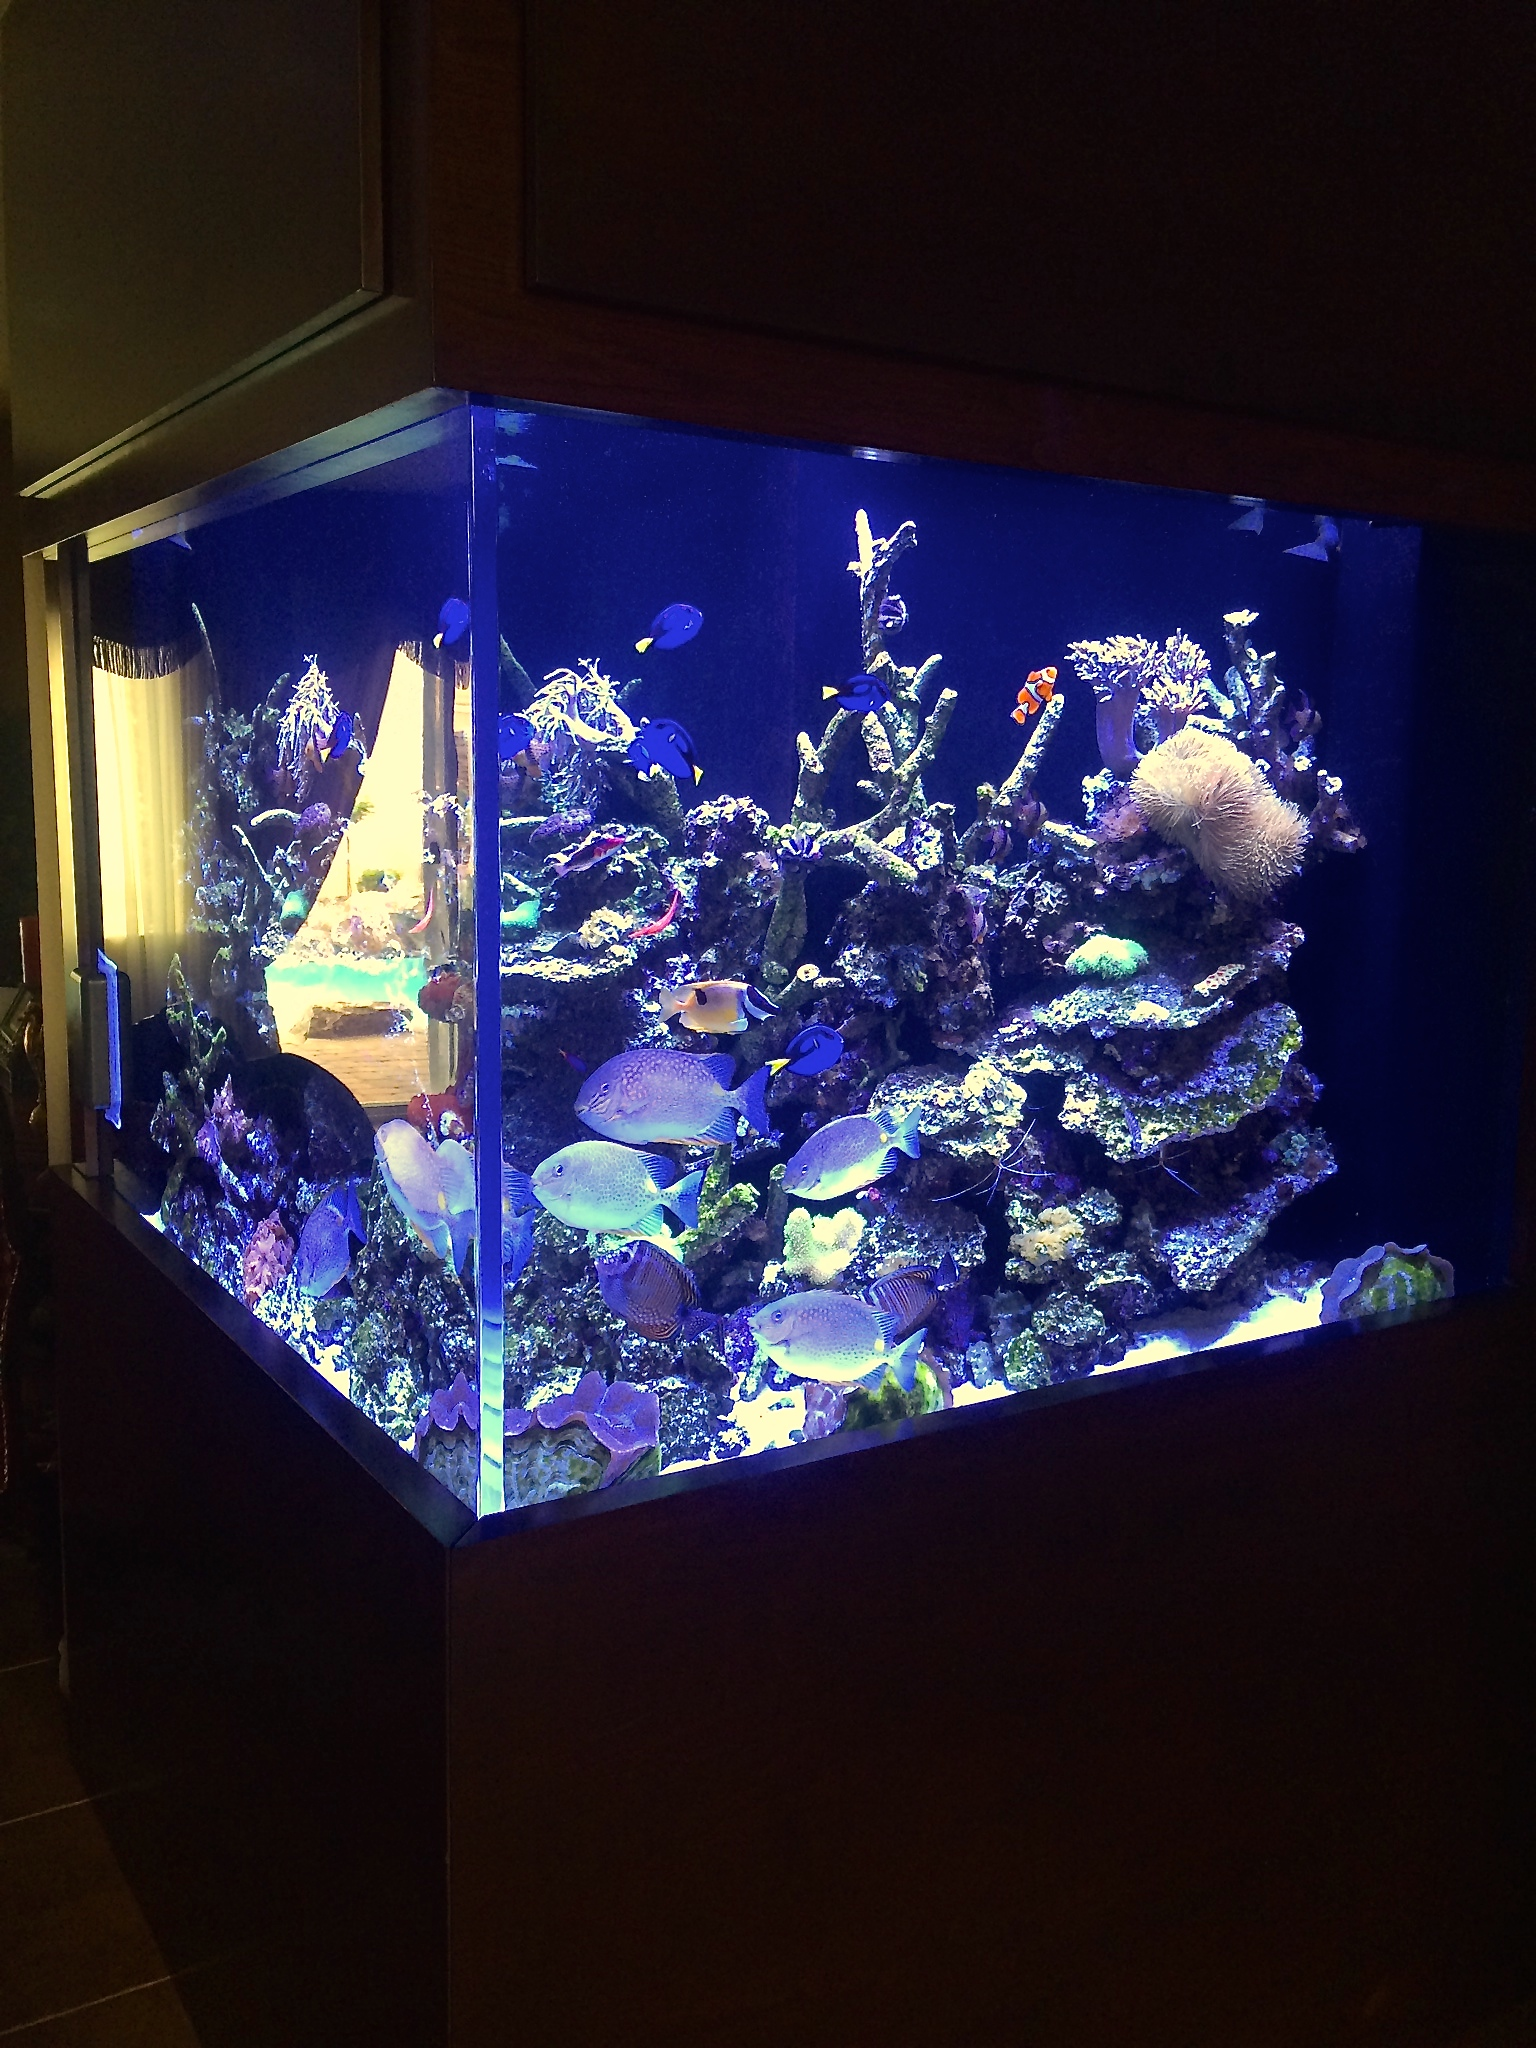 400 Gallon Aquarium Old 400 Plus Gallon Saltwater Reef